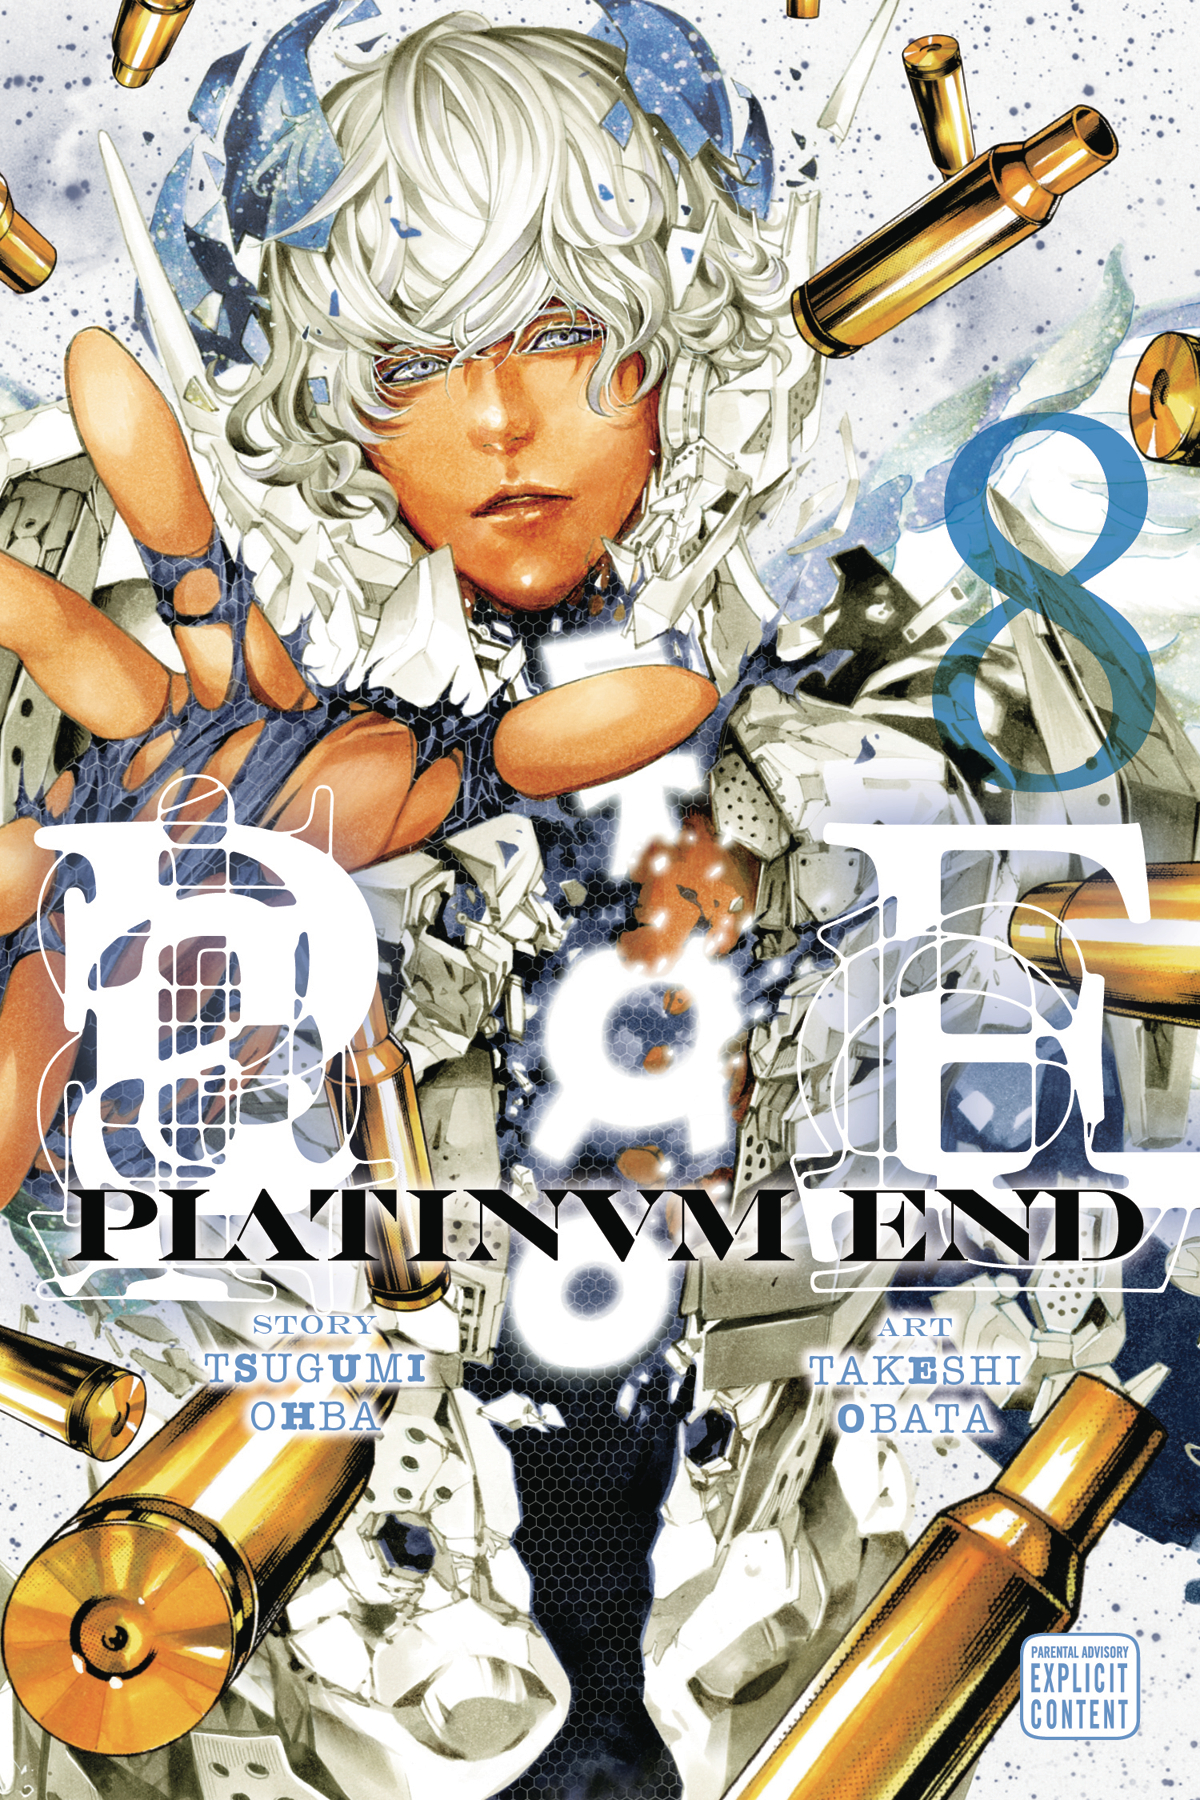 PLATINUM END GN VOL 08 (MR)